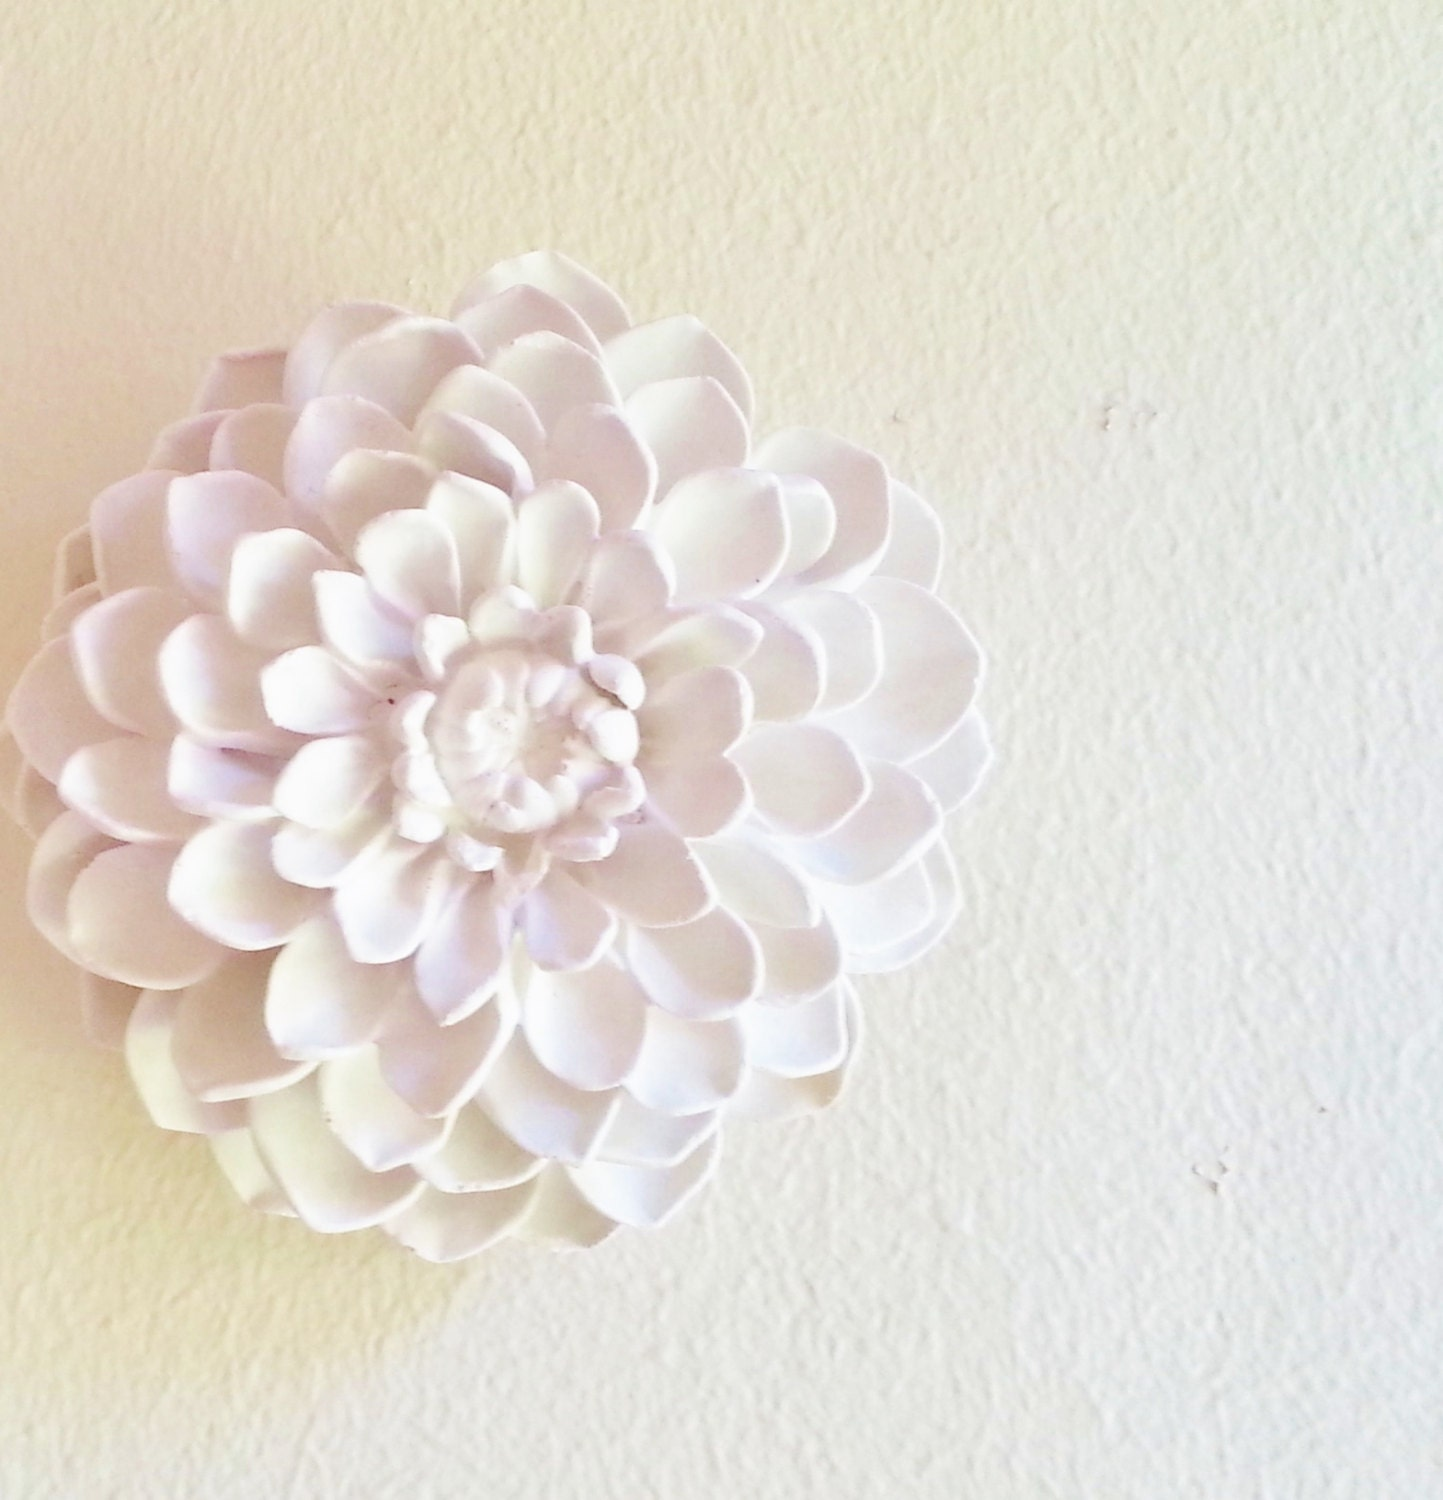 Dahlia flower sculpture boheme stone flowers modern for White wall decor